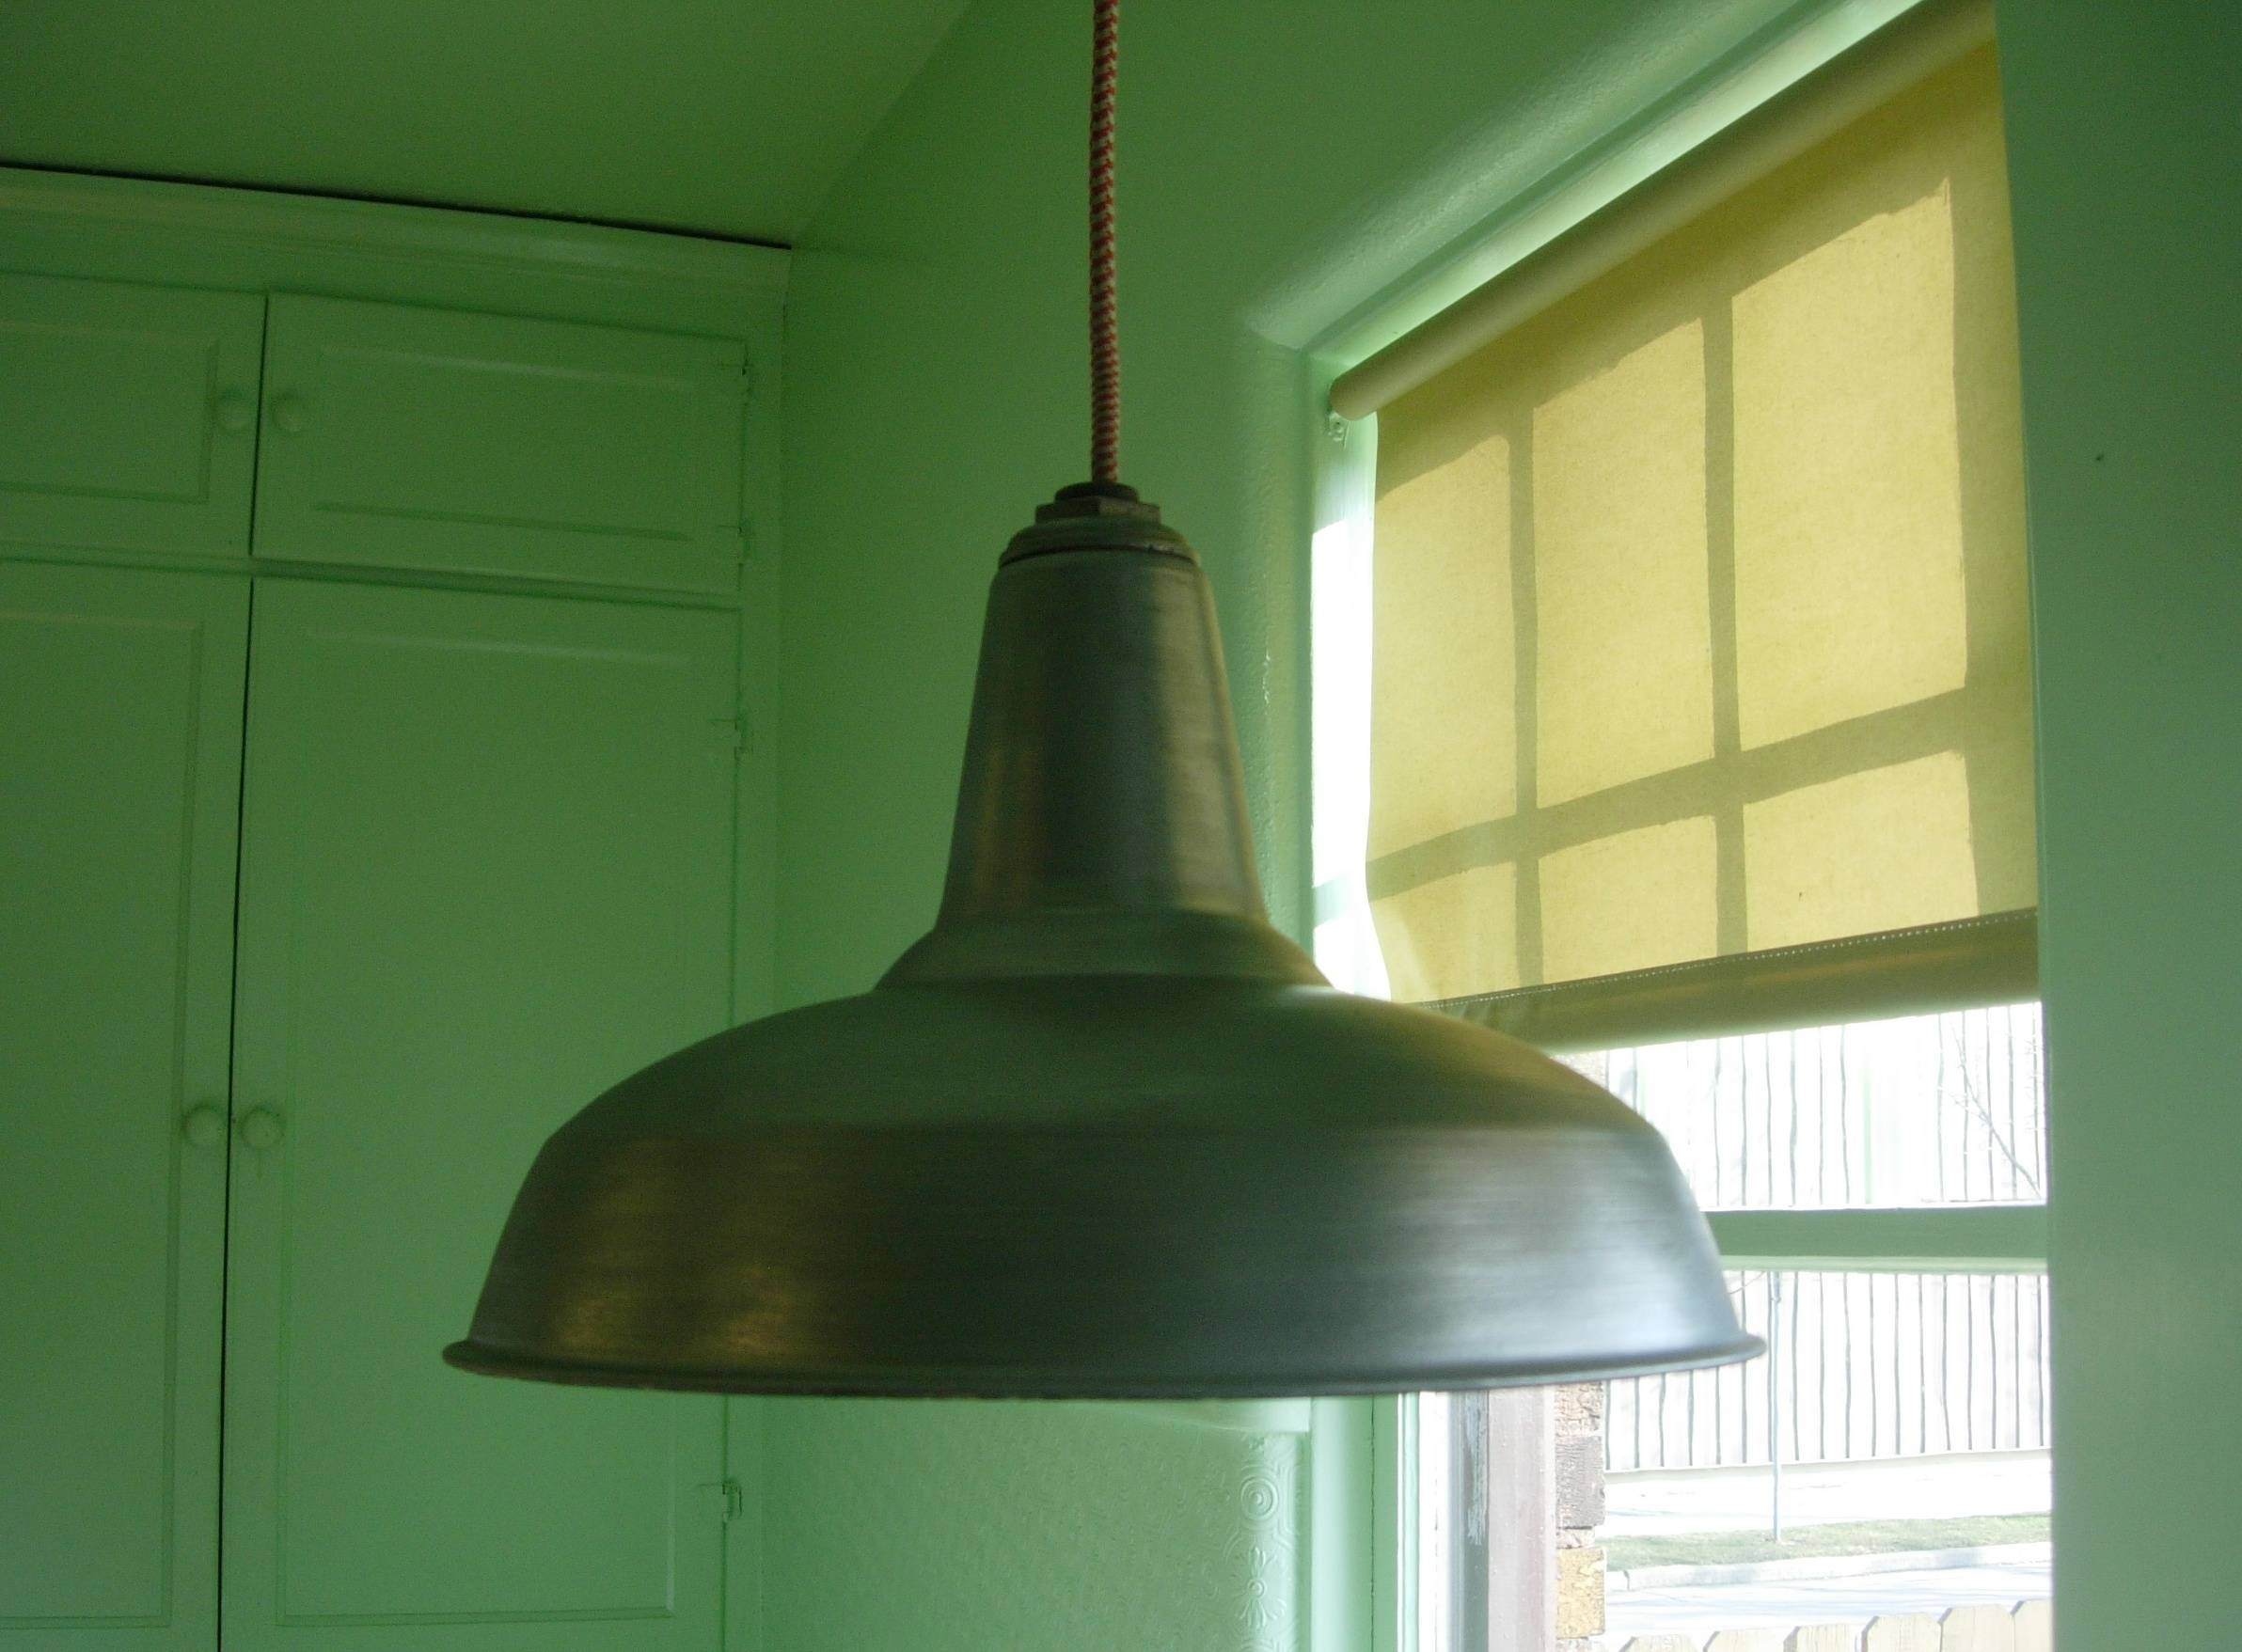 Barn Pendant Light Fixtures - Baby-Exit intended for Barn Pendant Lights (Image 2 of 15)